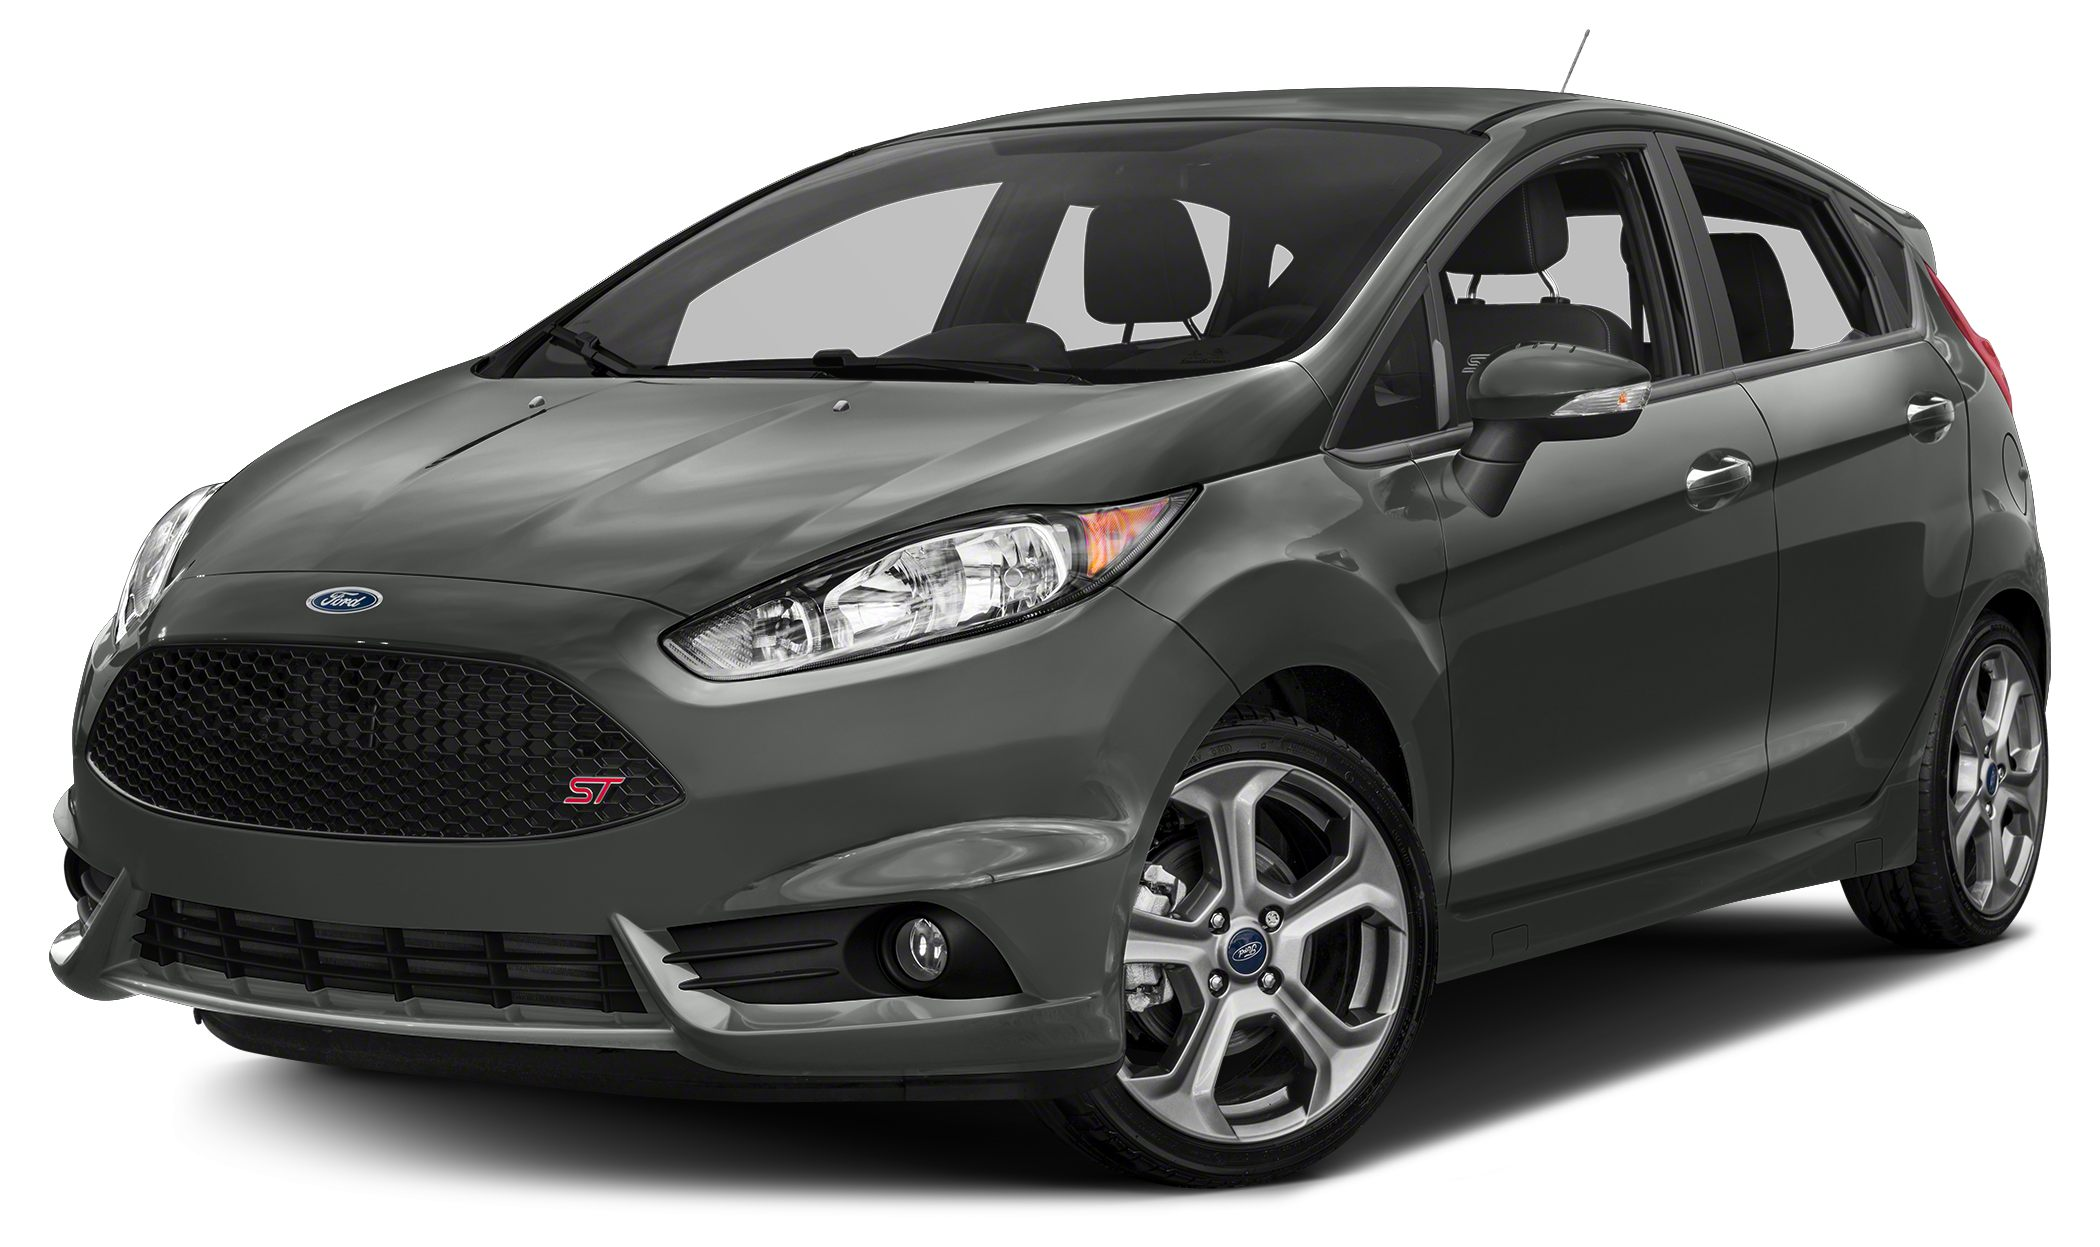 2017 Ford Fiesta ST The Our Cost Price reflects all applicable manufacturer rebates andor incenti